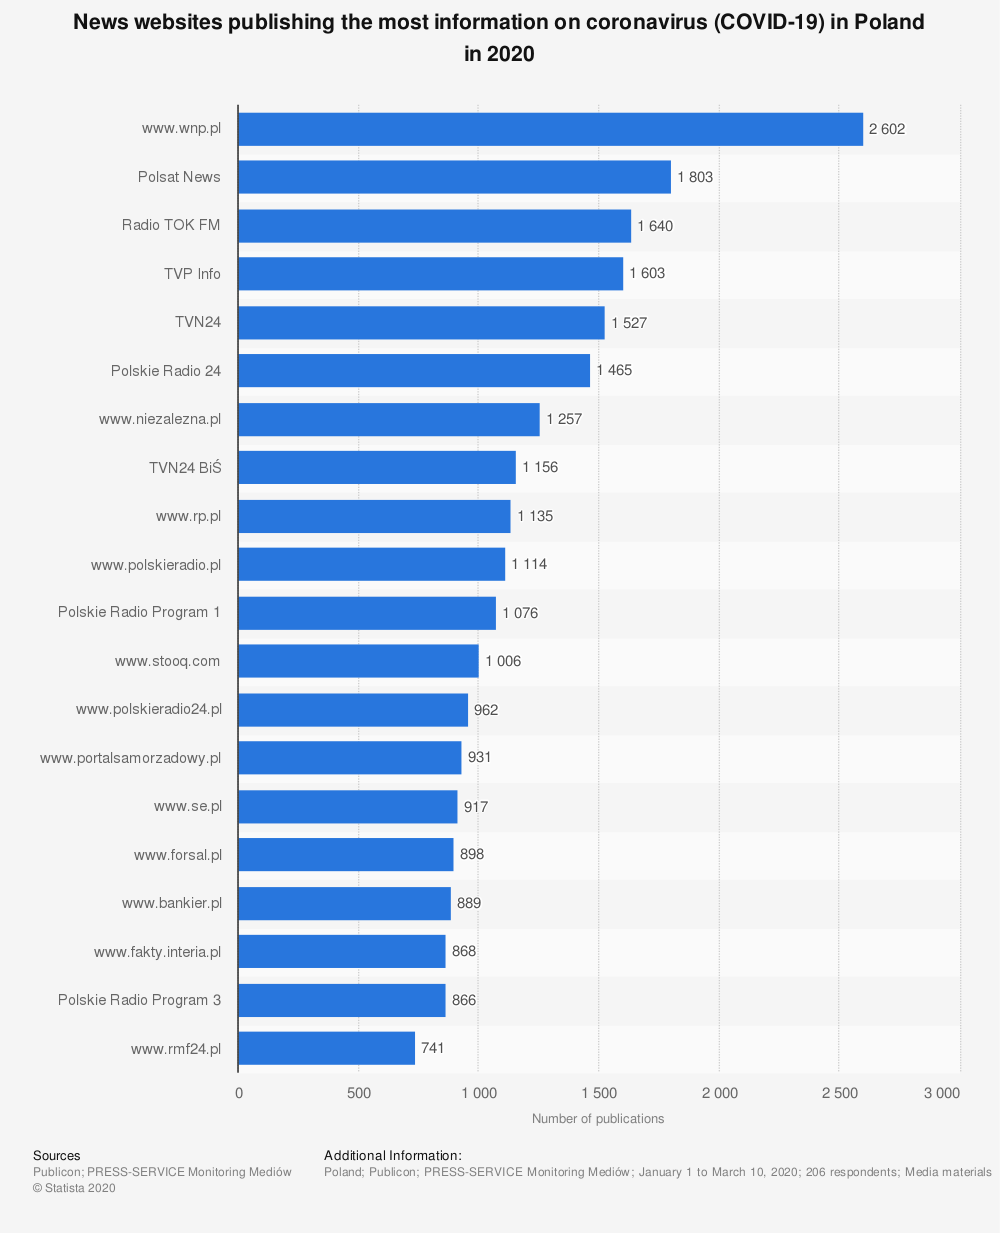 Statistic: News websites publishing the most information on coronavirus (COVID-19) in Poland in 2020 | Statista